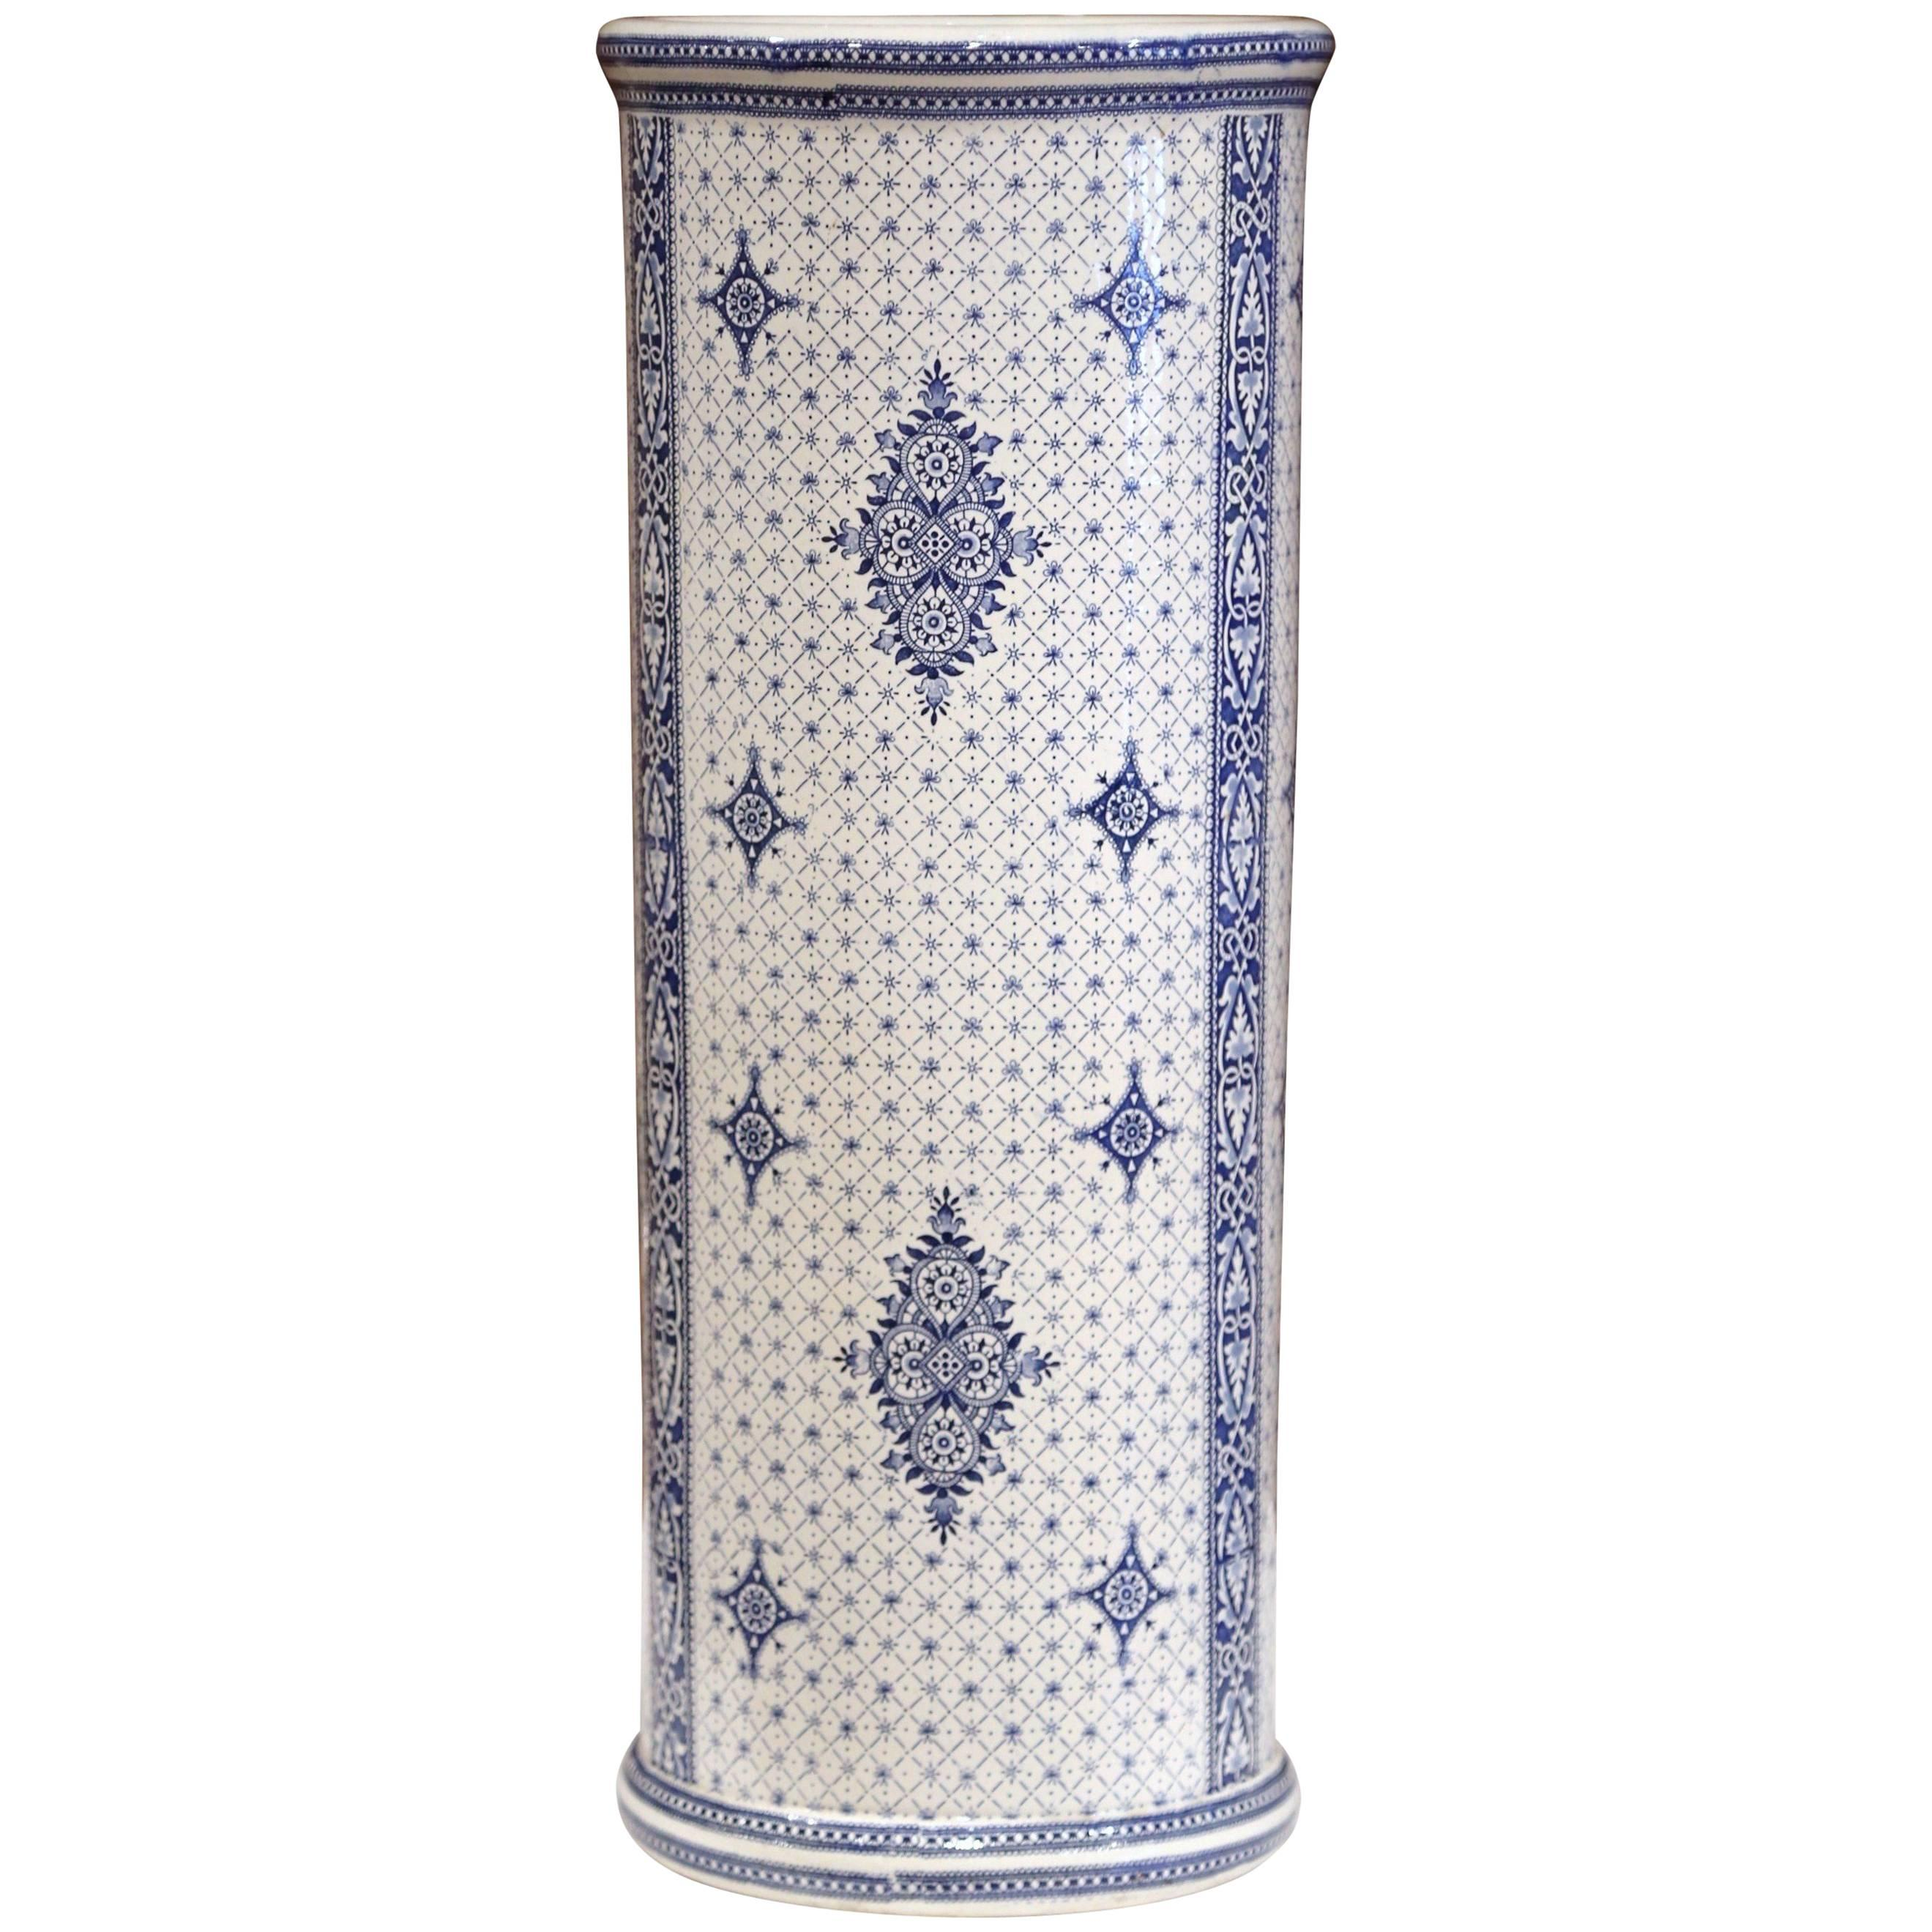 Early 20th Century Belgium Blue And White Hand Painted Umbrella Stand,  Bruges